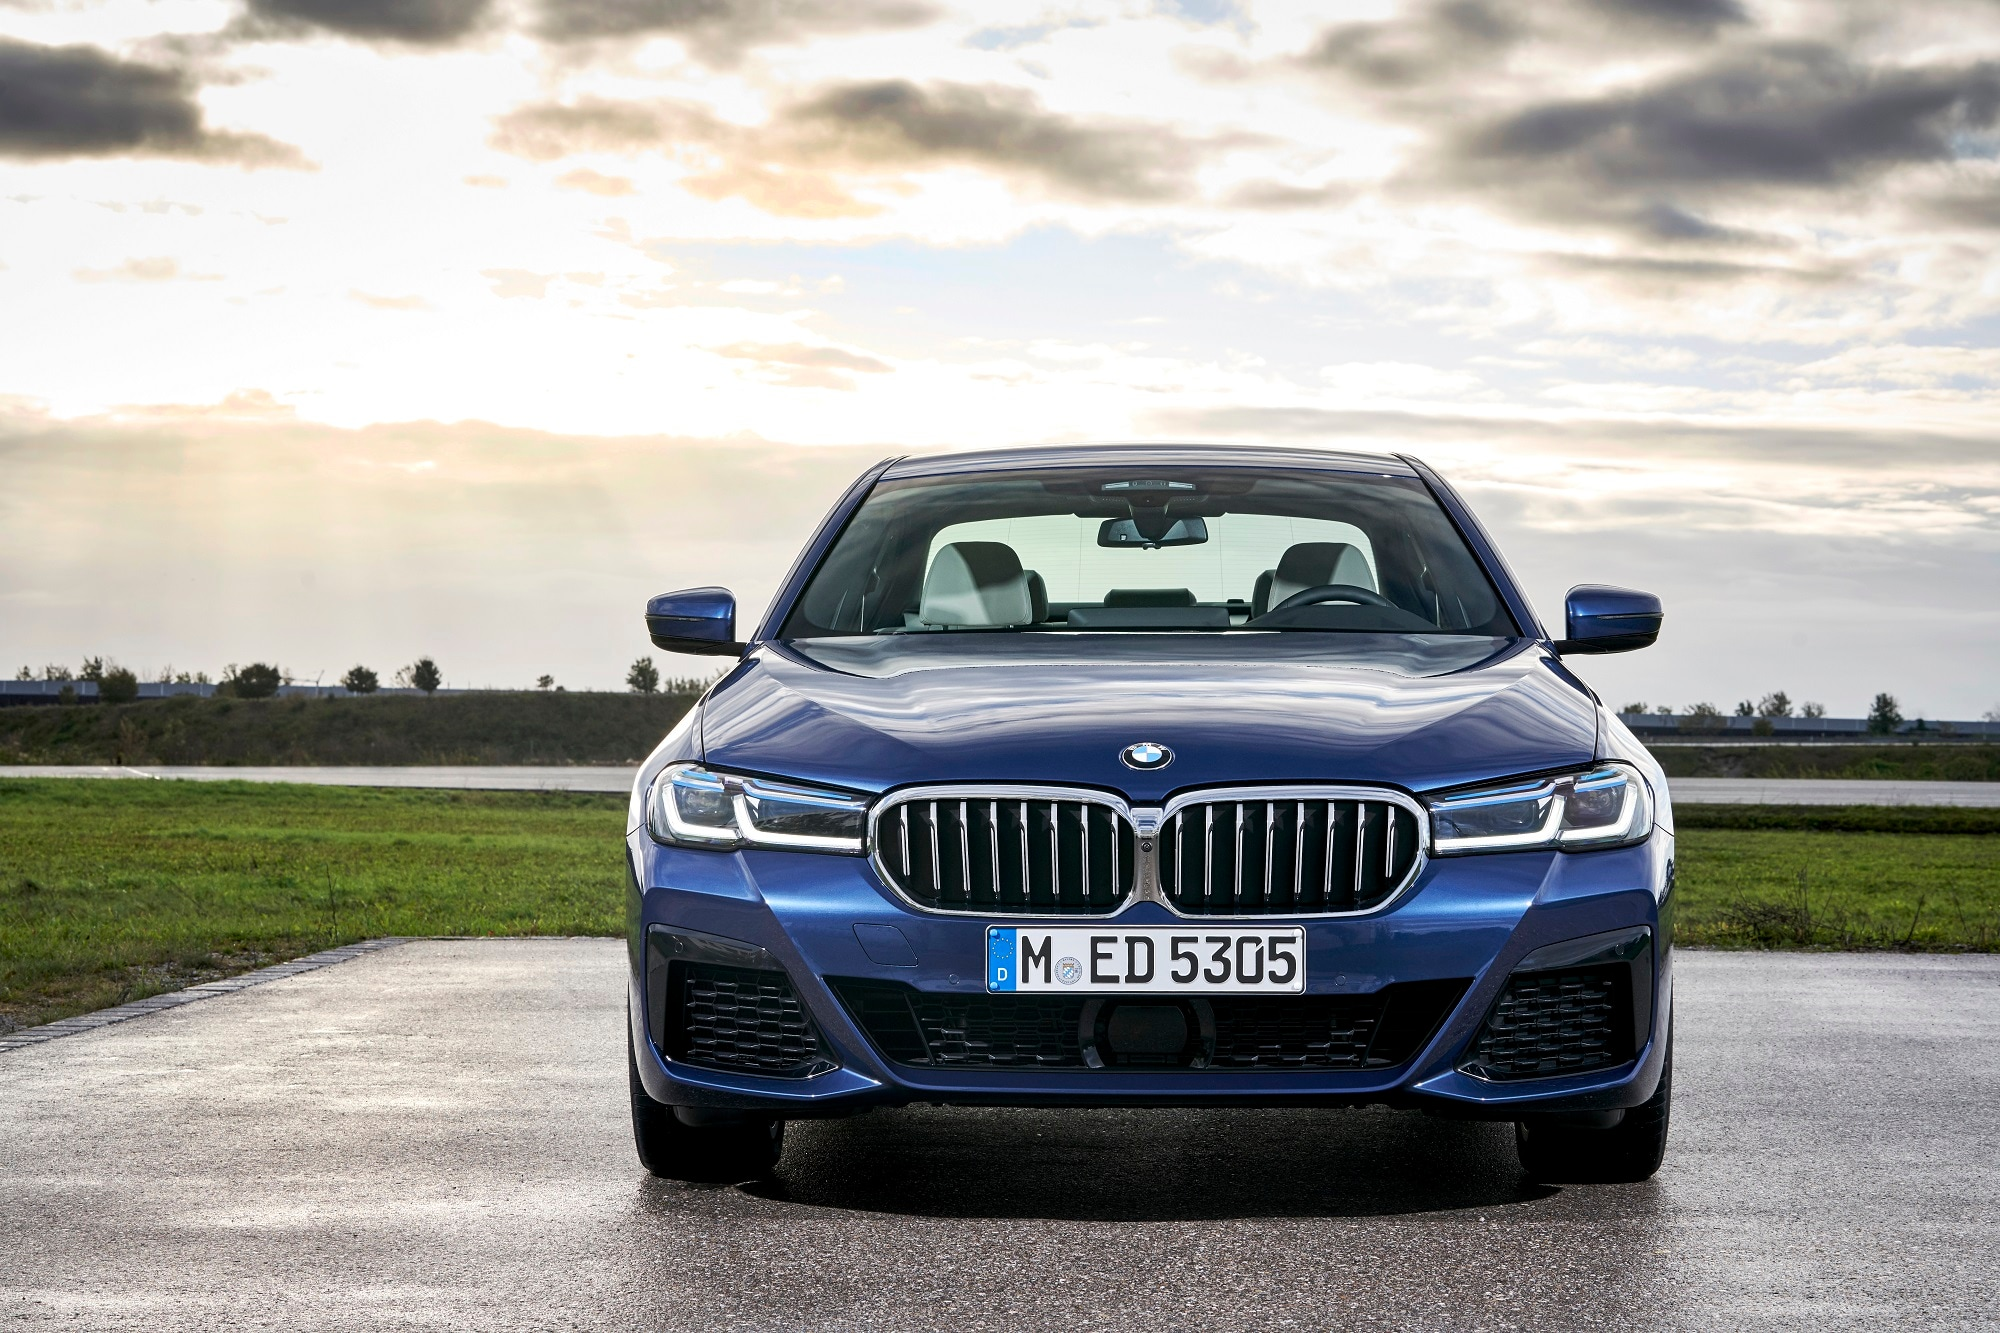 BMW India has also commenced bookings of the new car from today onwards.